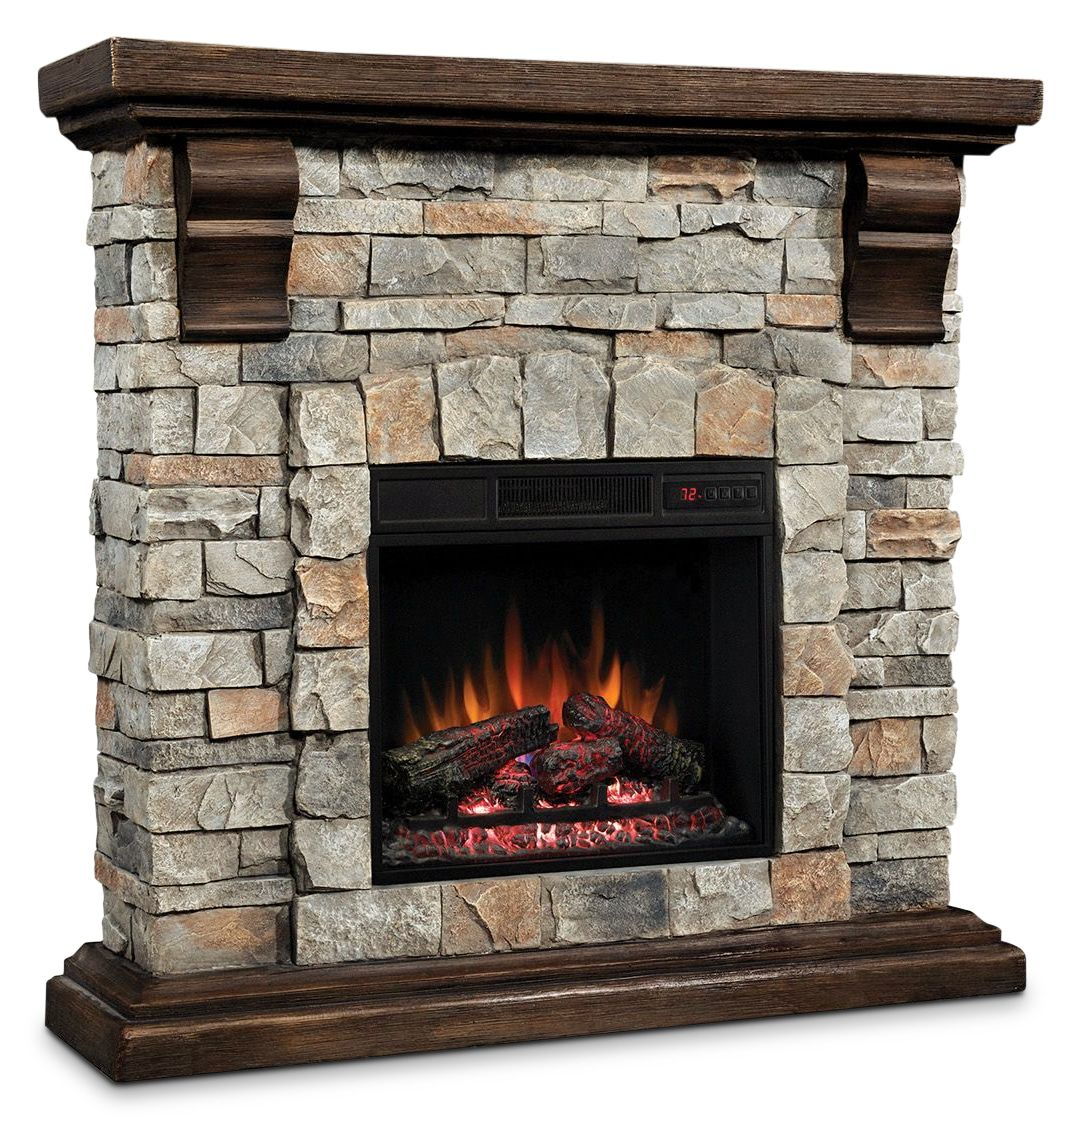 The Pioneer Fireplace Boasts Stone Detailing Engineered To Look